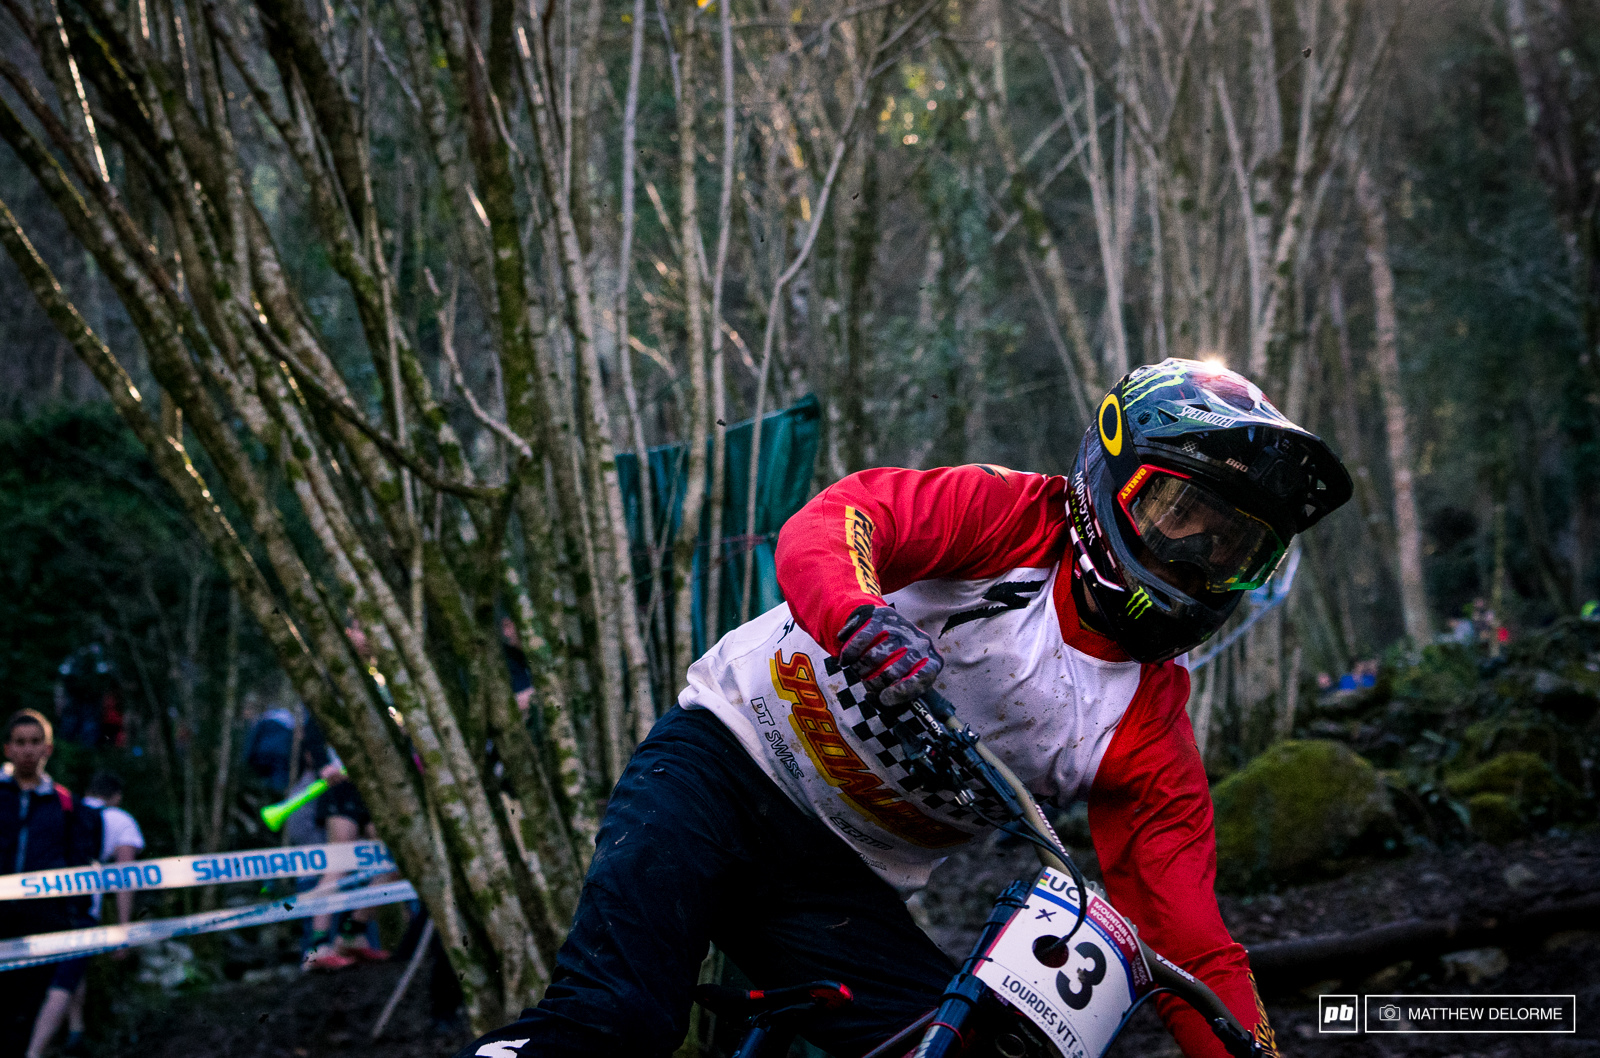 Troy Brosnan s ability to let his bike float over terrain took him straight to fourth place.